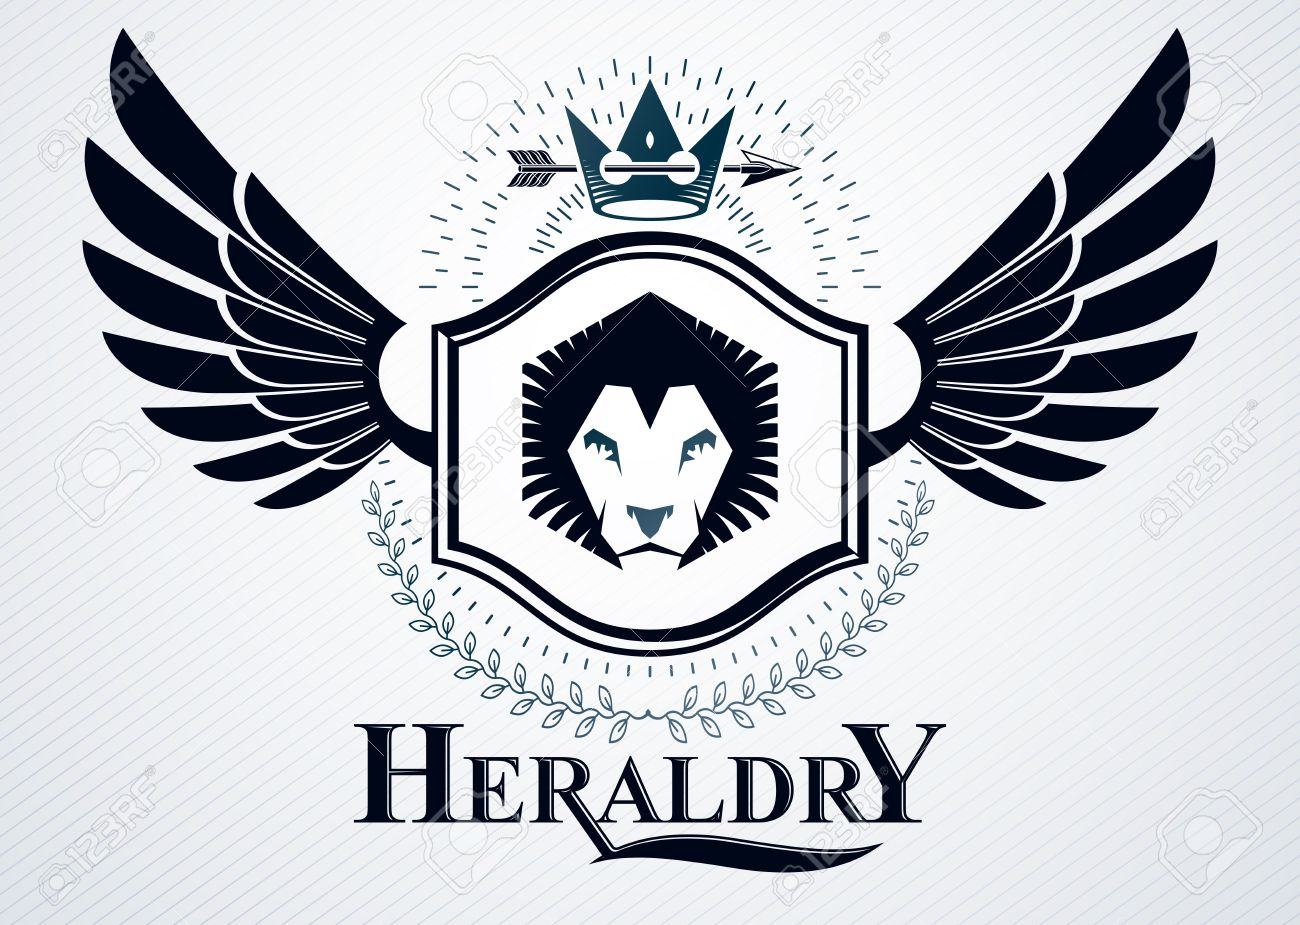 classy emblem made with eagle wings decoration wild lion illustration royalty free cliparts vectors and stock illustration image 67471257 classy emblem made with eagle wings decoration wild lion illustration